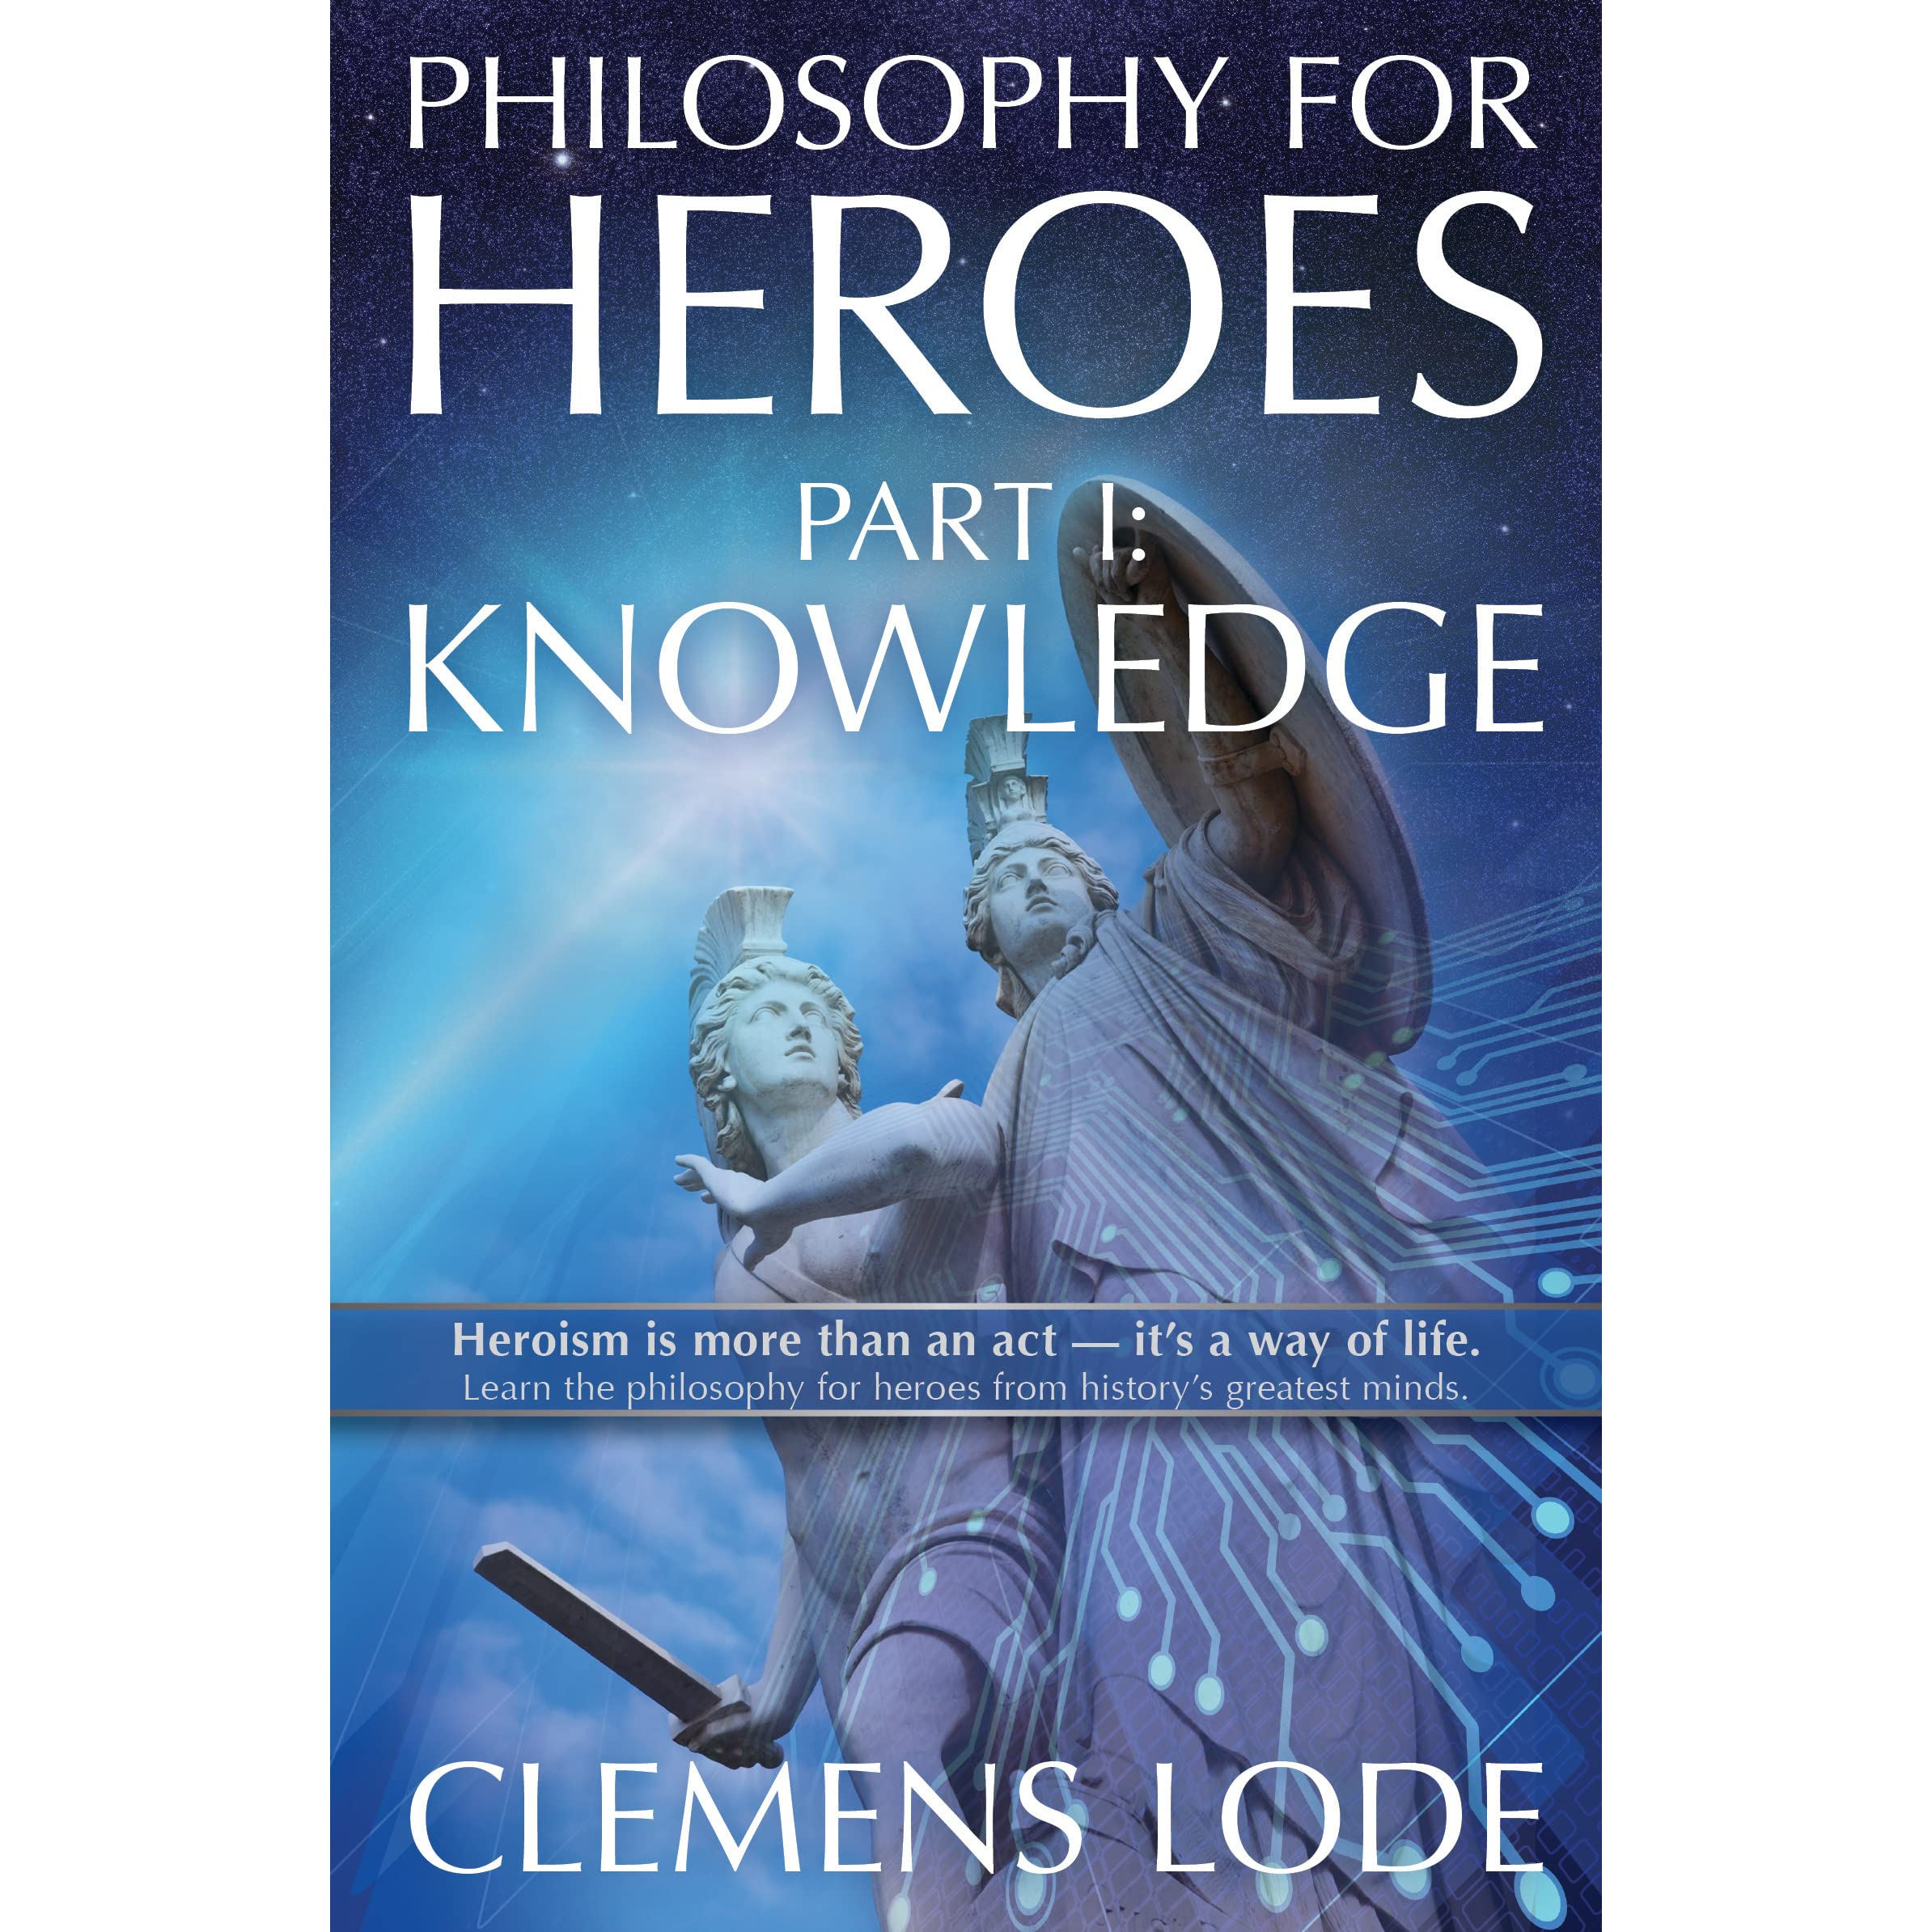 Knowledge (Philosophy for Heroes, #1) by Clemens Lode